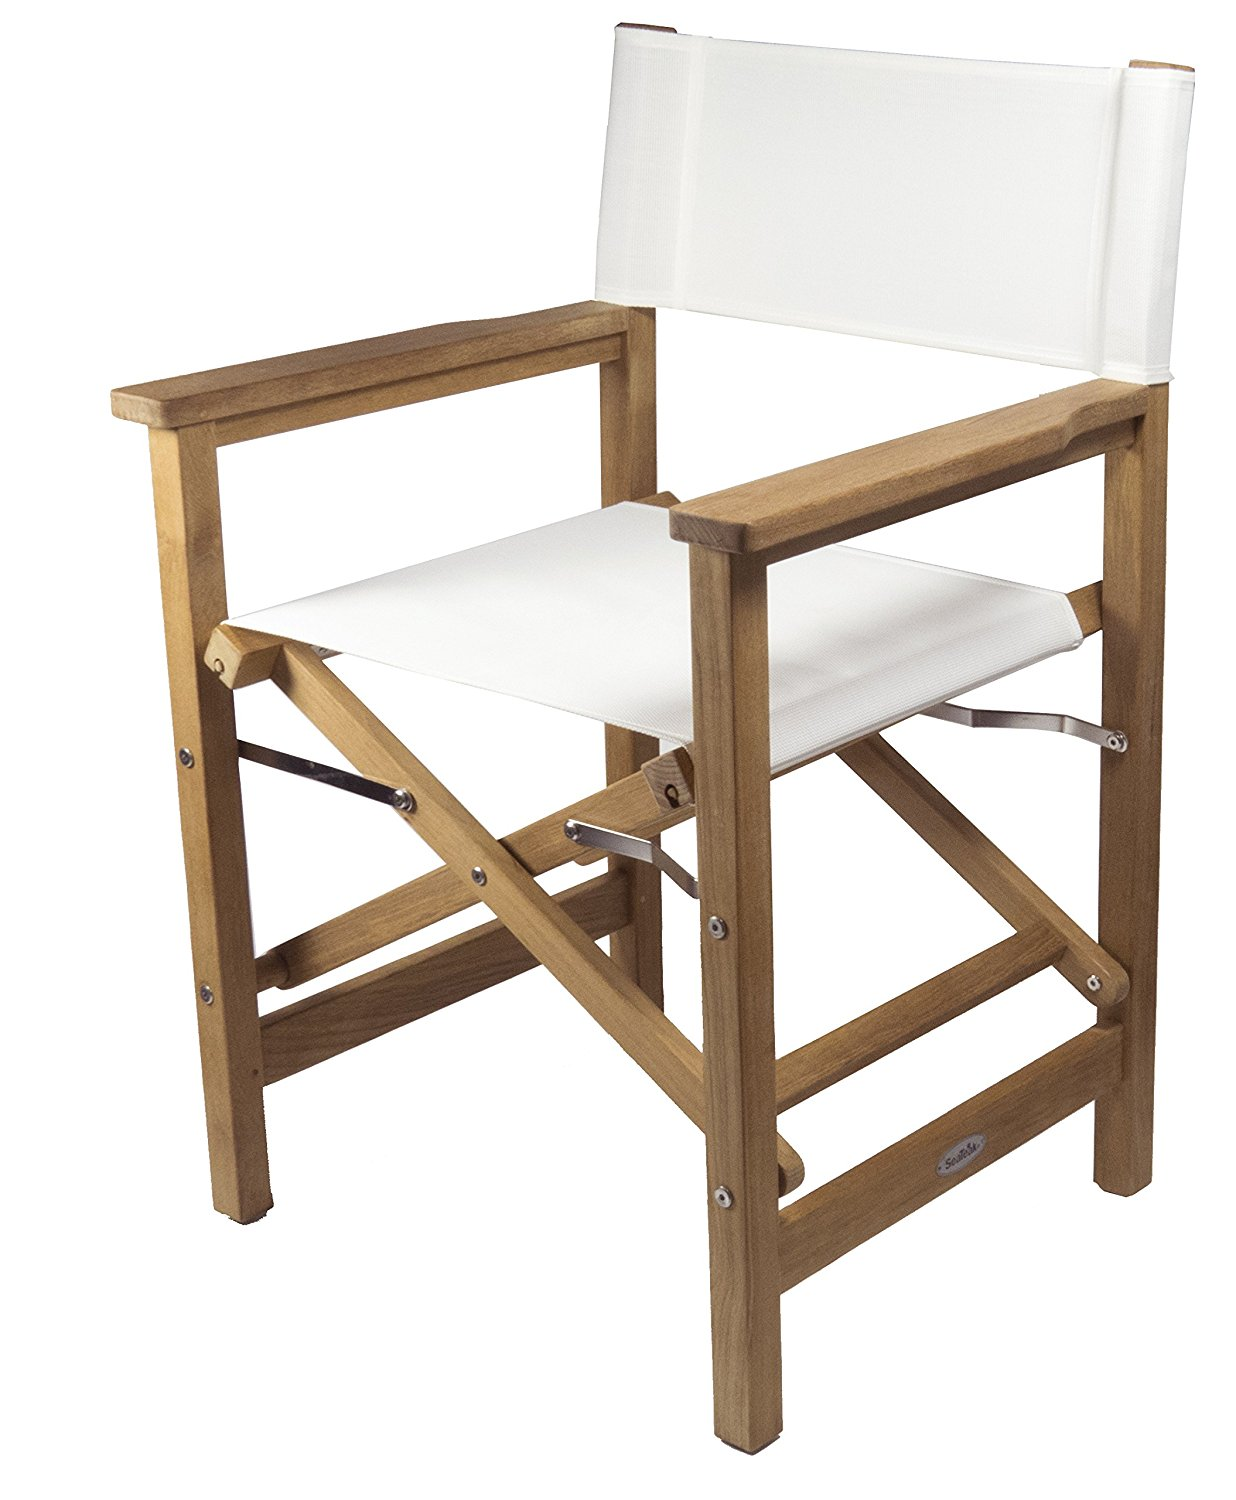 Outdoor Directors Chairs Best Teak Directors Chairs Reviews And Information